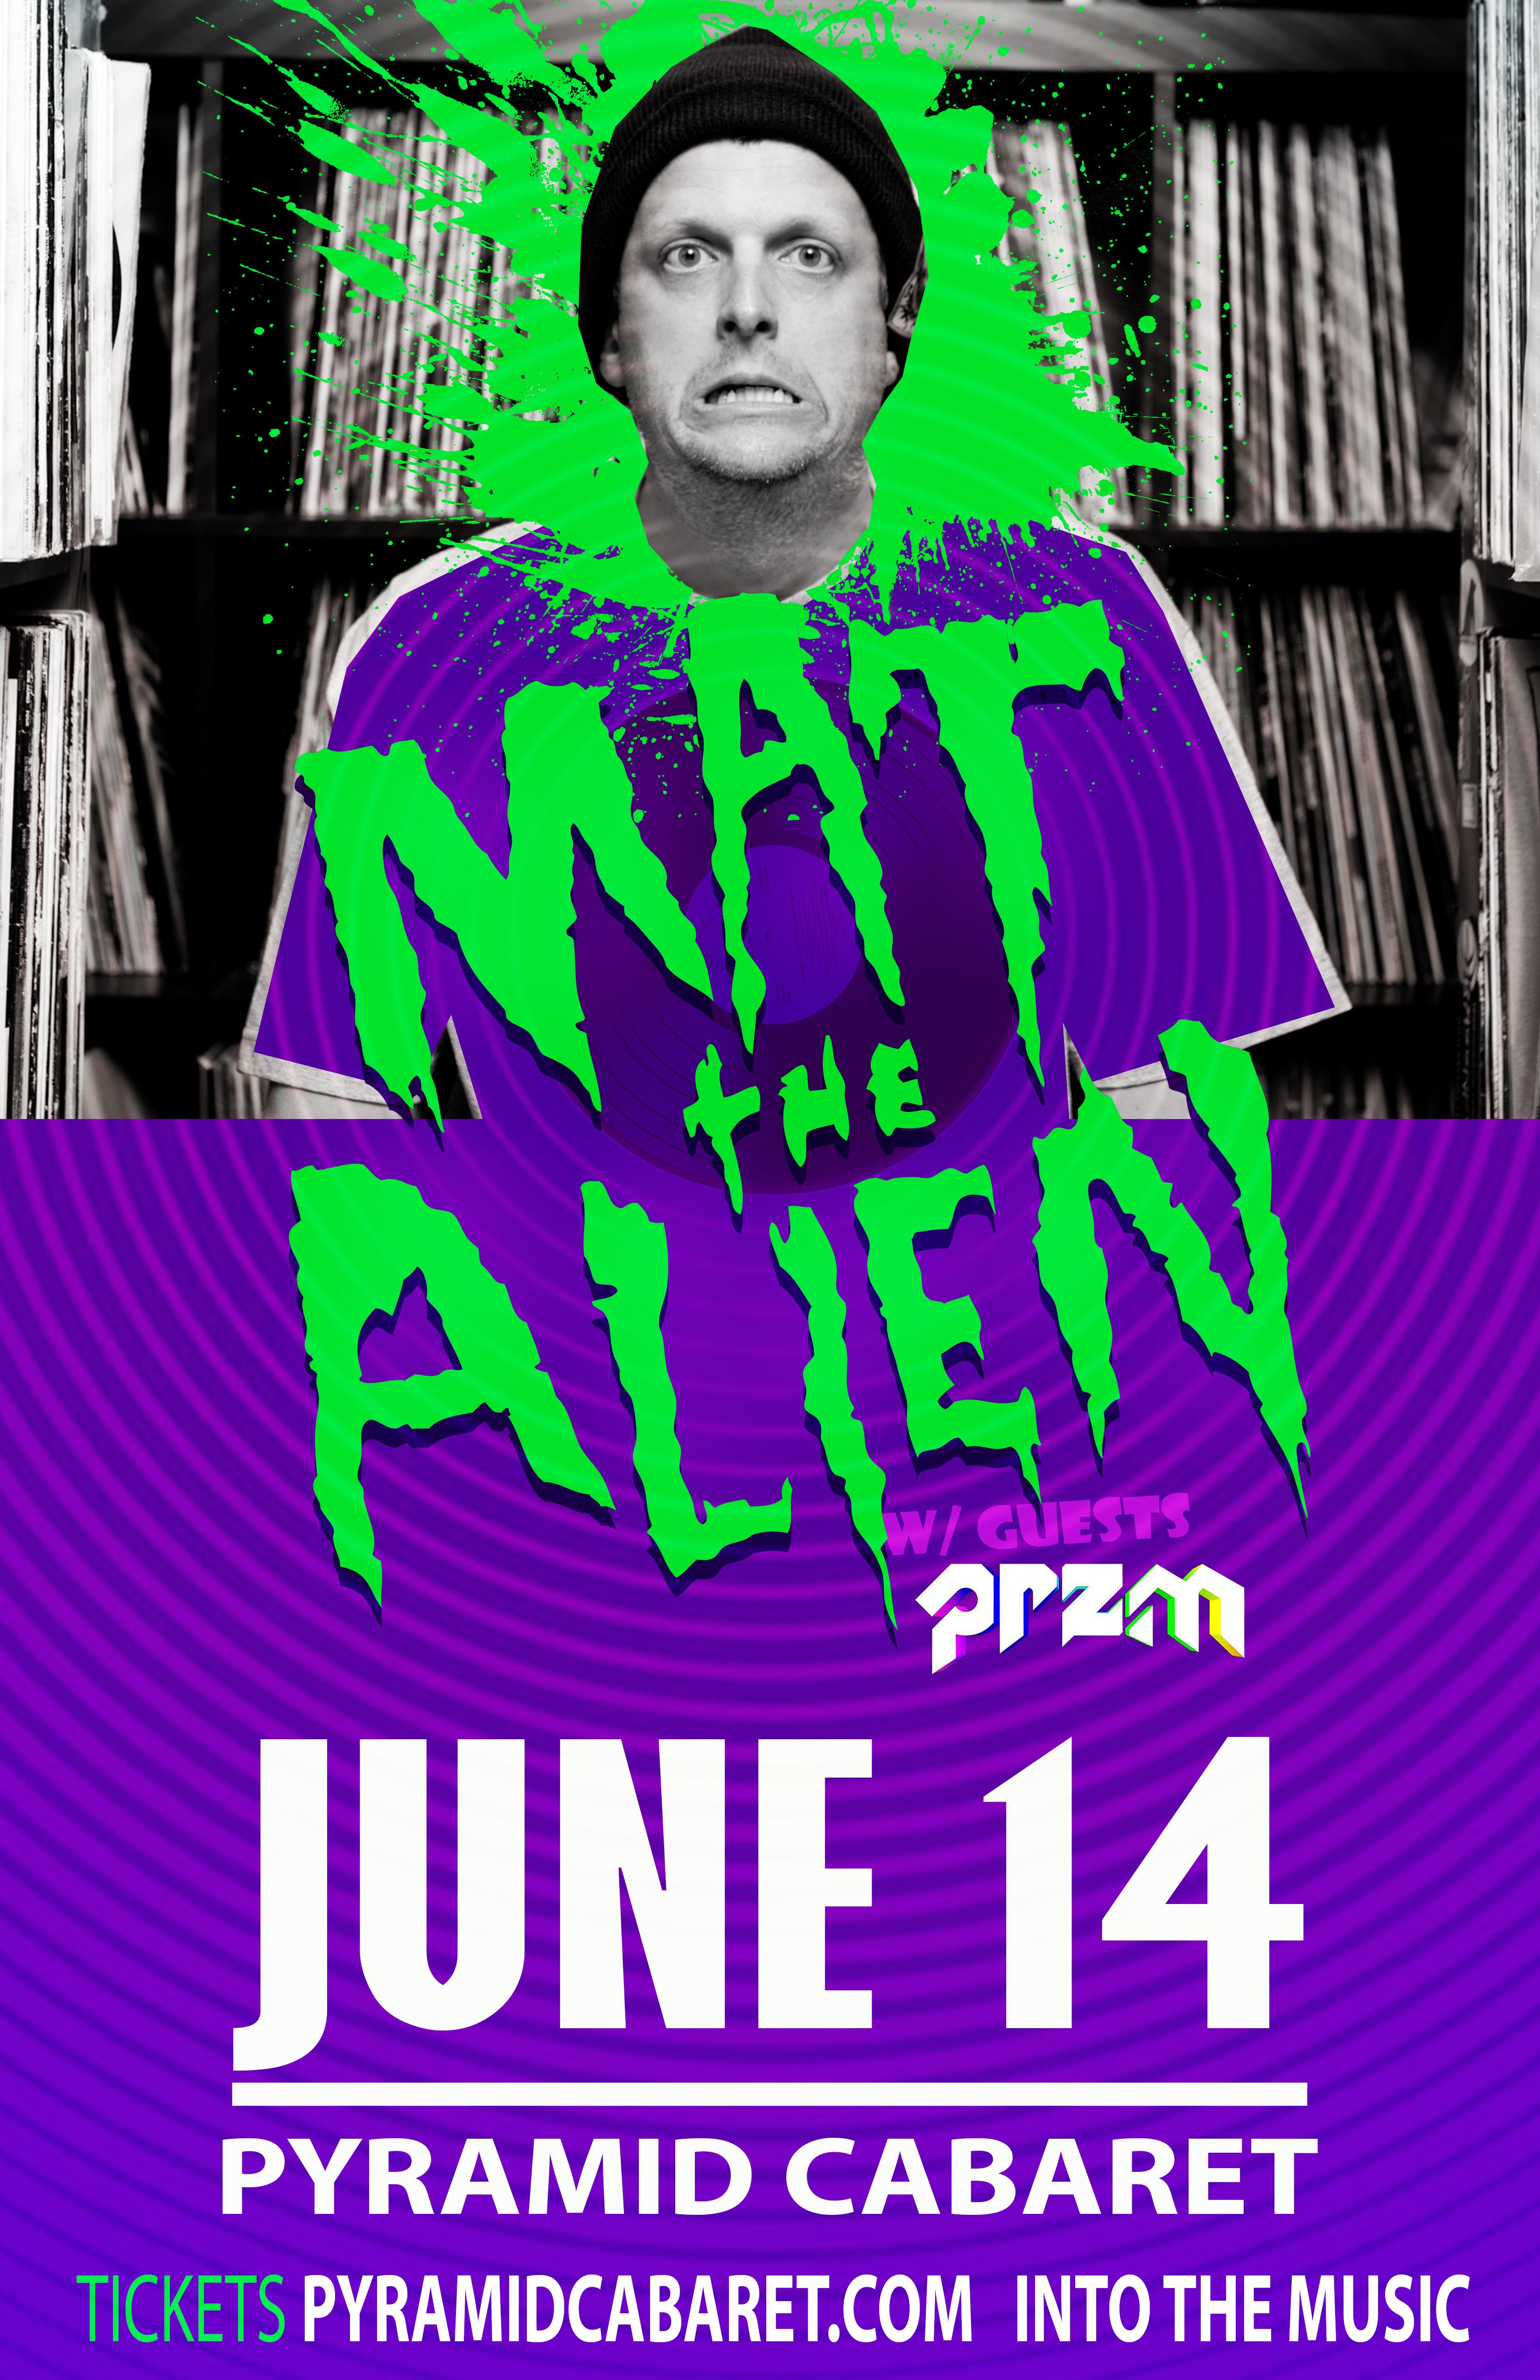 MAT THE ALIEN - JUNE 14 - The PYRAMID 00191